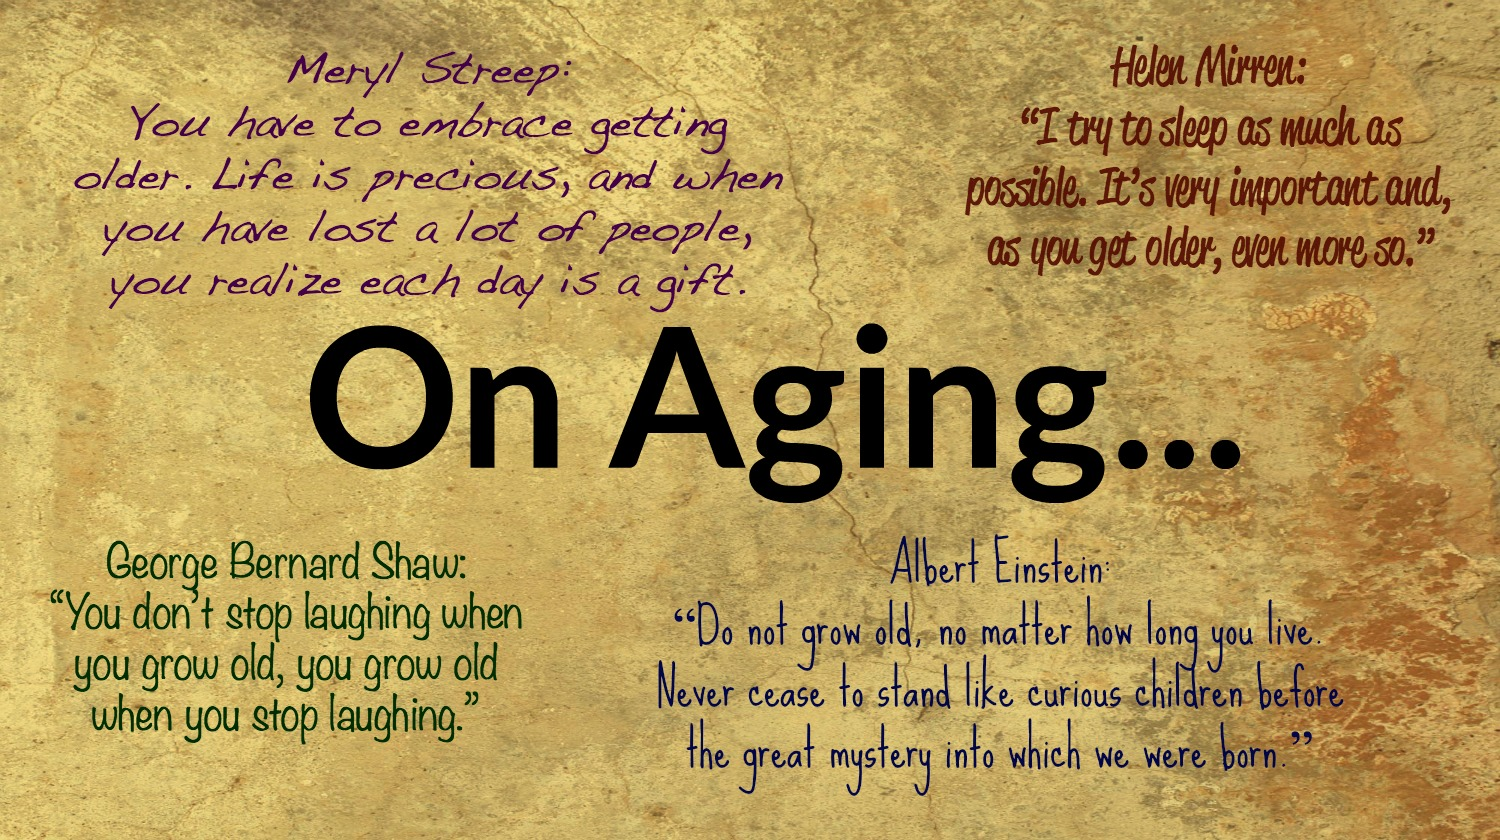 Great Inspirational Quotes 7 Inspirational Quotes For Aging Gracefully  Midlife Boulevard